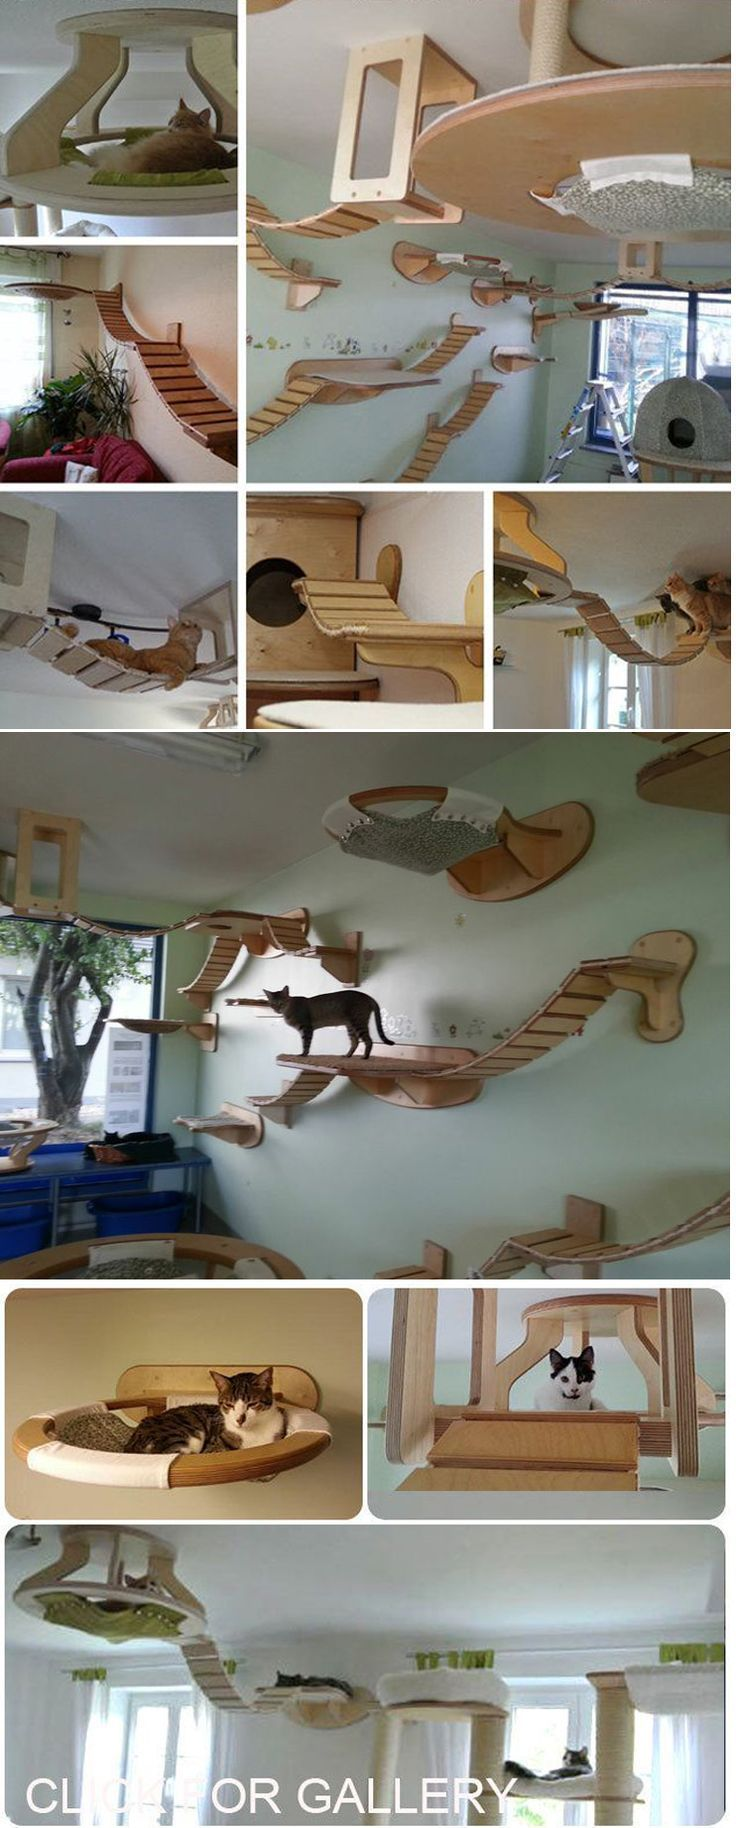 7 best katzenwand images on pinterest cat climbing wall cute kittens and cat houses. Black Bedroom Furniture Sets. Home Design Ideas